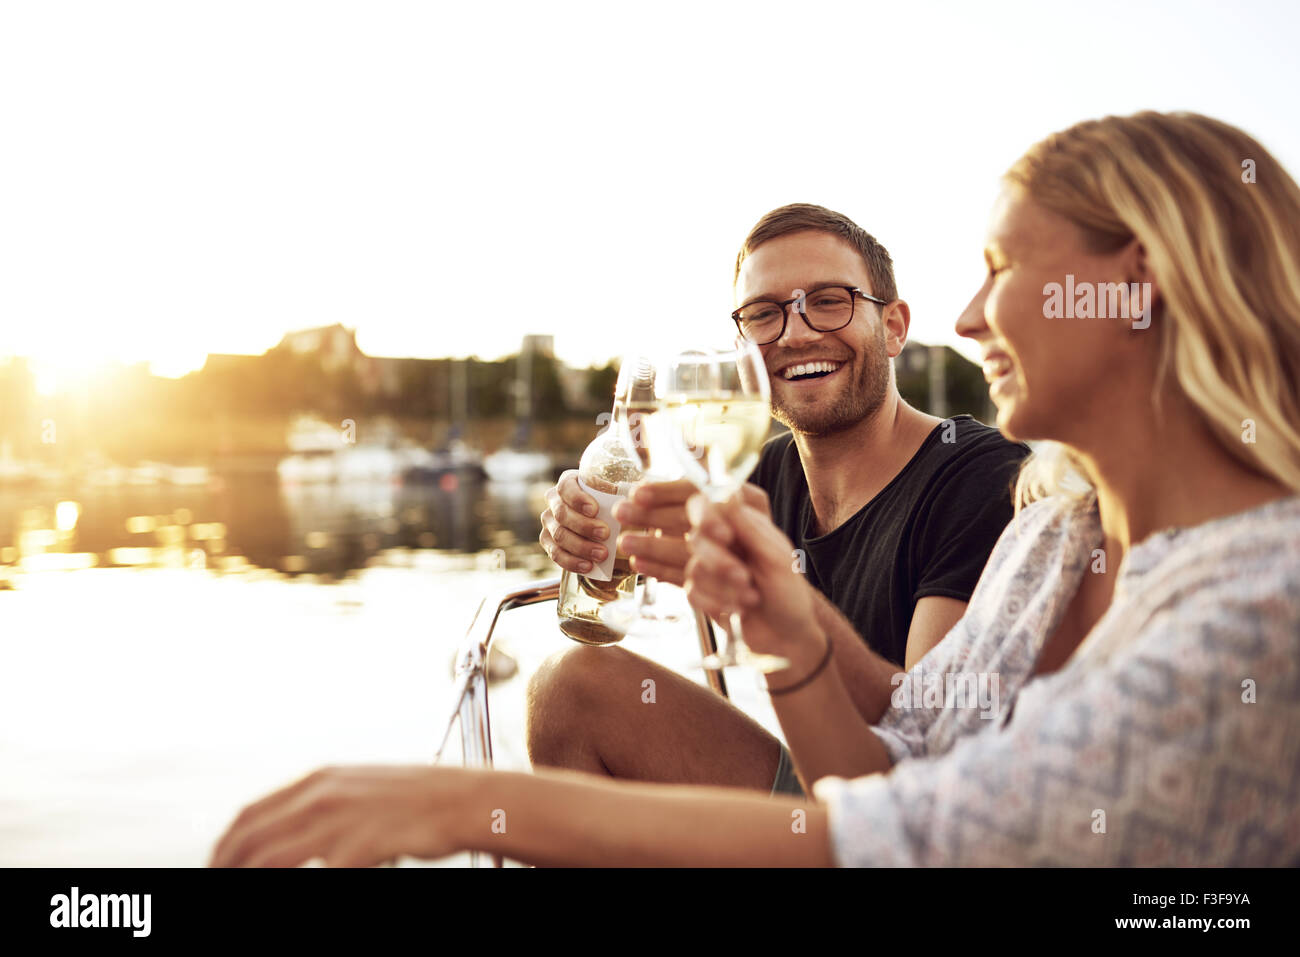 Happy Couple Toasting Glasses on a Summer Evening - Stock Image